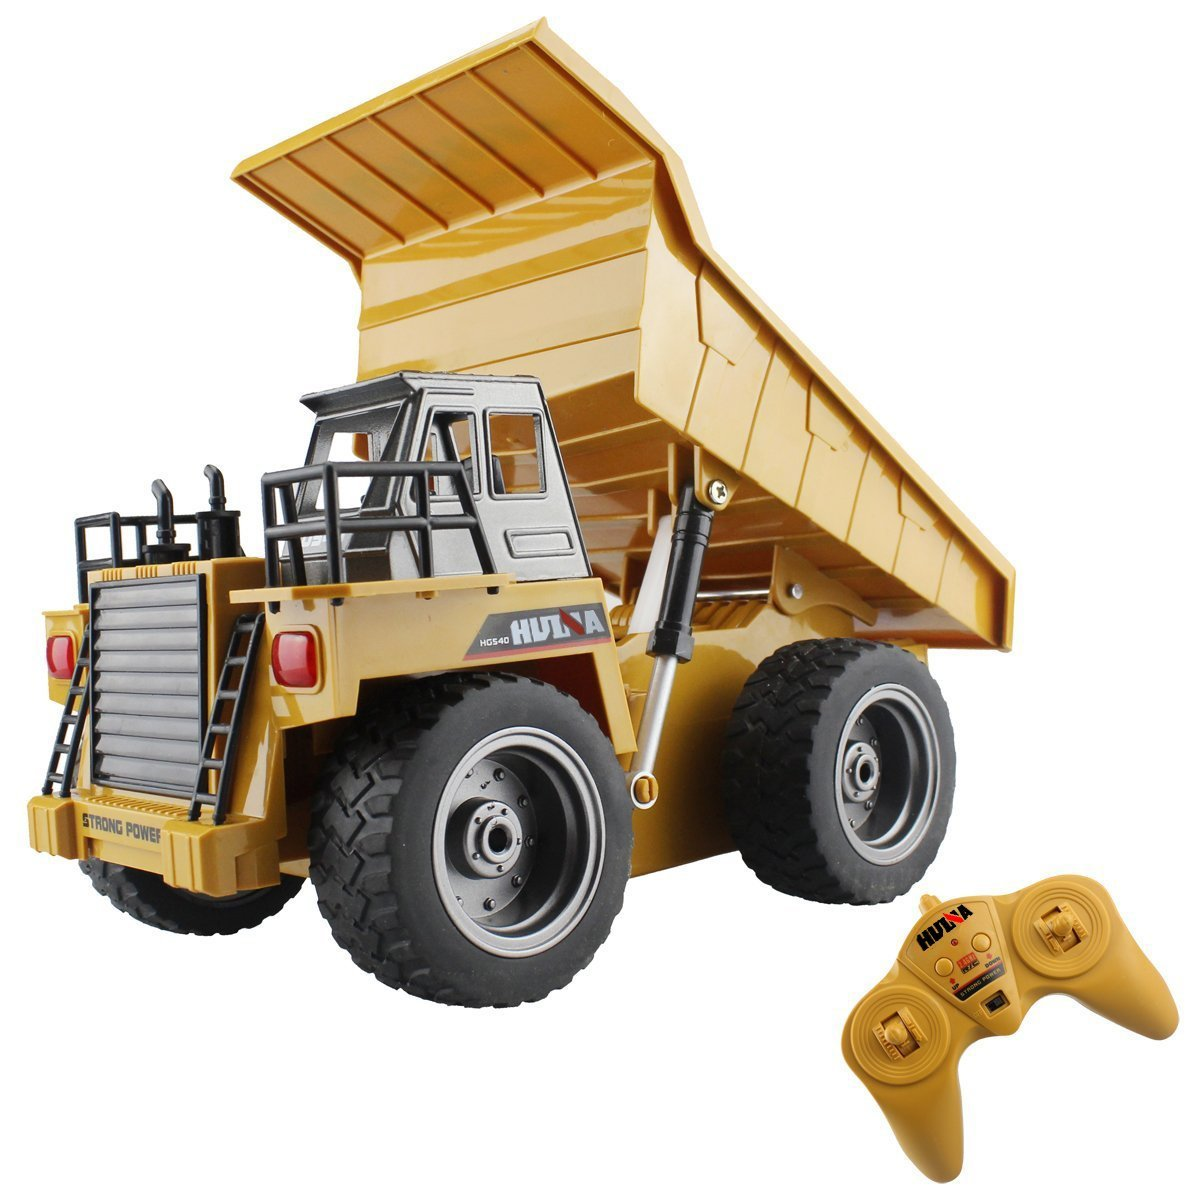 6 Ch 2.4G Alloy Remote Control Dump Truck 4 Wheel Driver Mine Construction Vehicle Toy Machine Model with LED Light